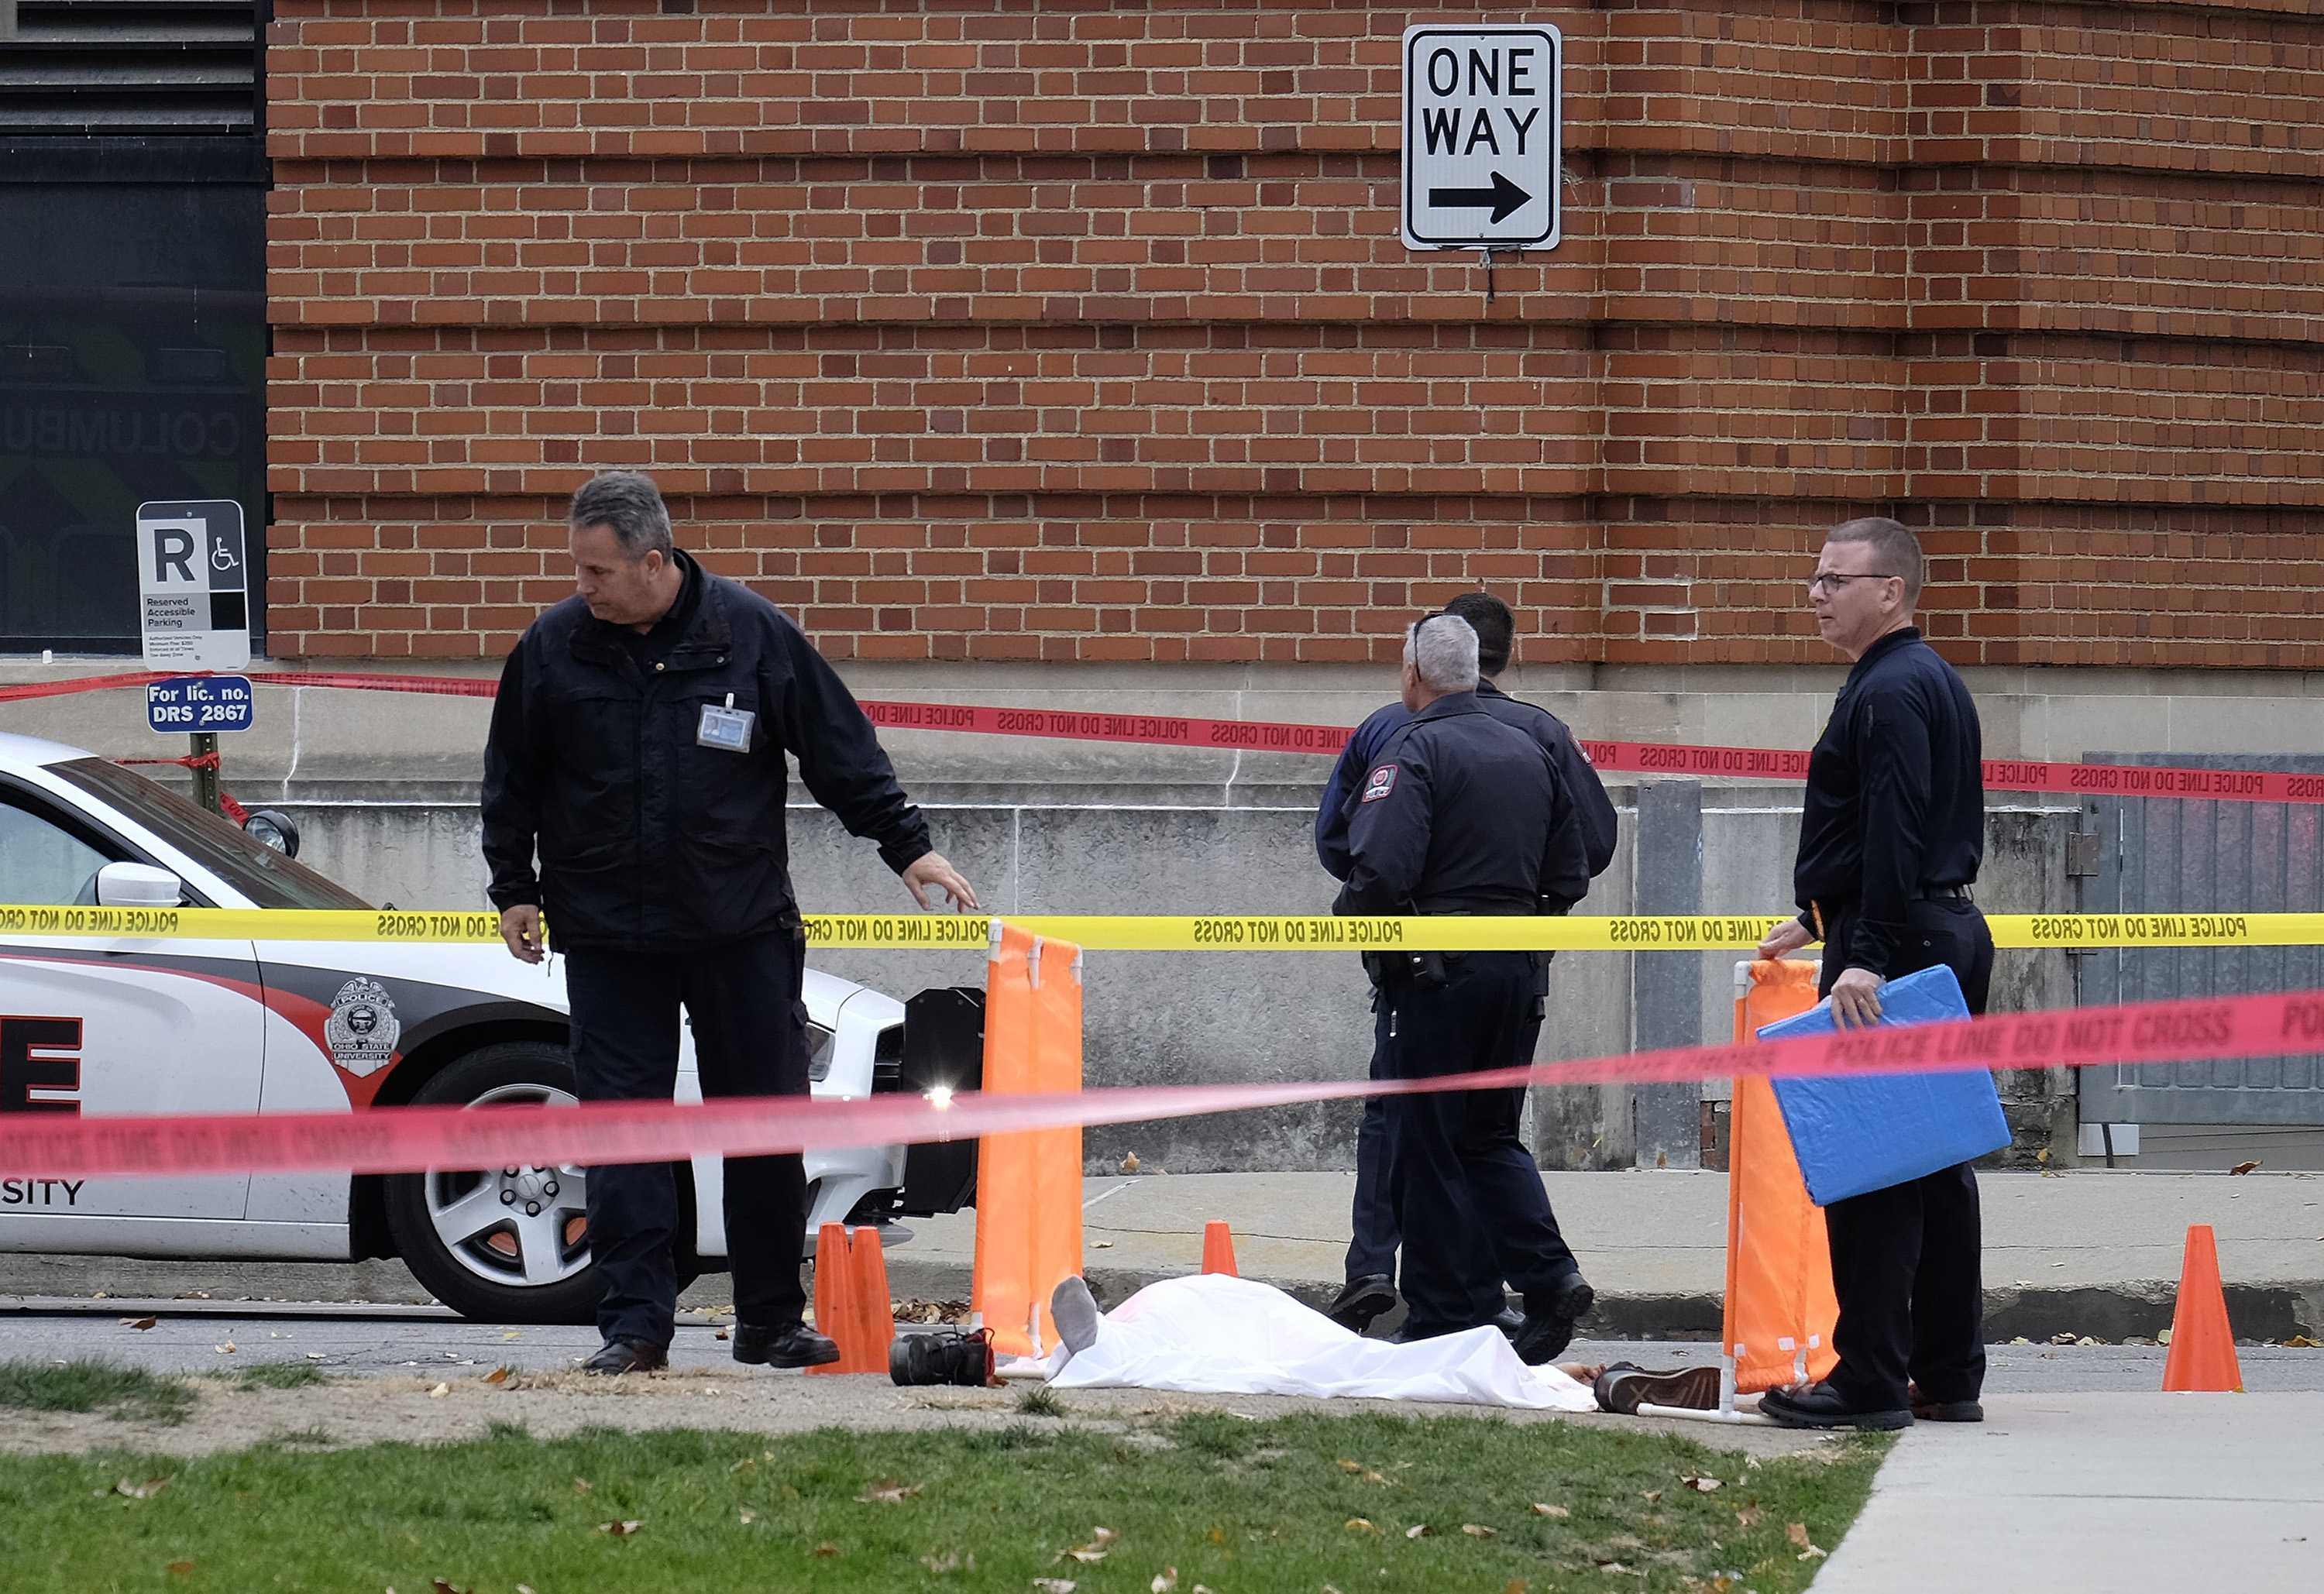 Police cover the body of a suspect along 19th Avenue outside Watts Hall on Ohio State's campus following a vehicular assault and stabbing on Nov. 28, 2016 in Columbus, Ohio. (Adam Cairns/The Columbus Dispatch/TNS)